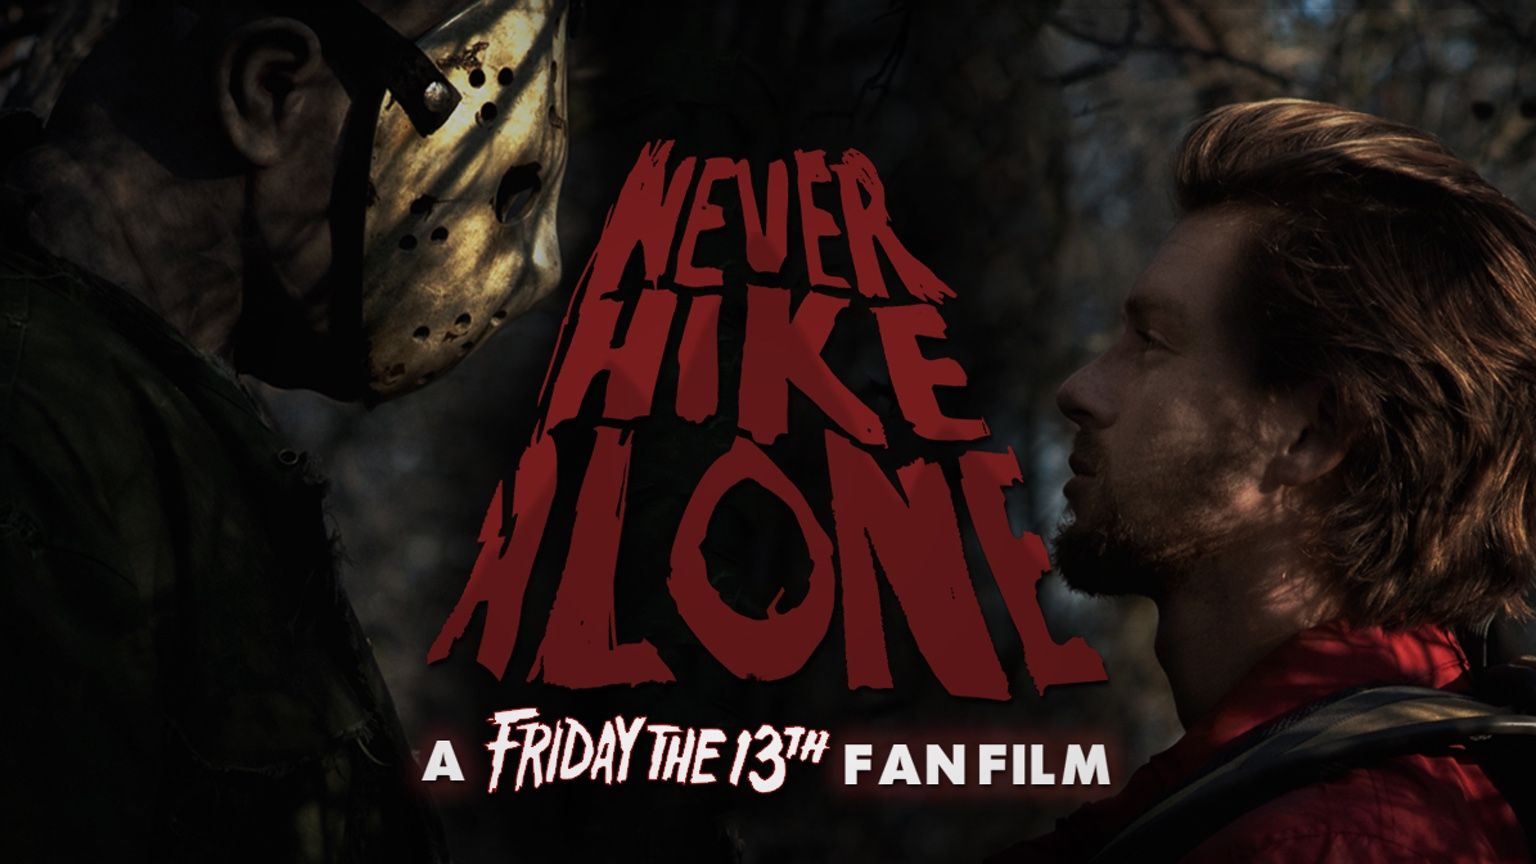 Never Hike Alone follows the story of Kyle McLeod, a young